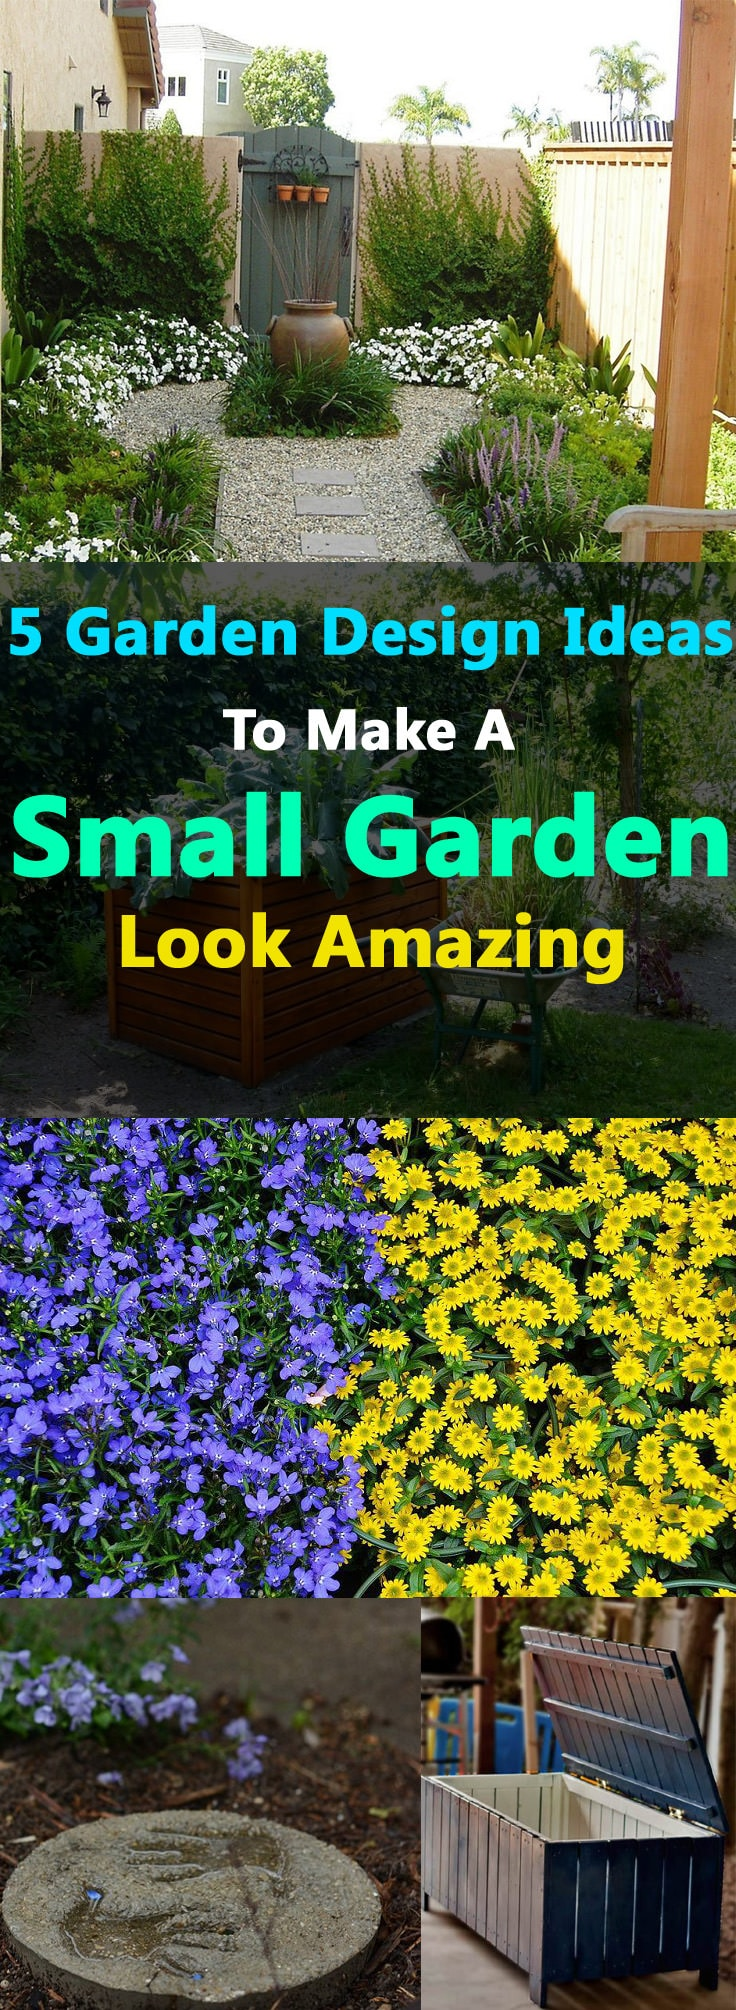 5 garden design ideas to make a small garden look amazing for How to design my garden